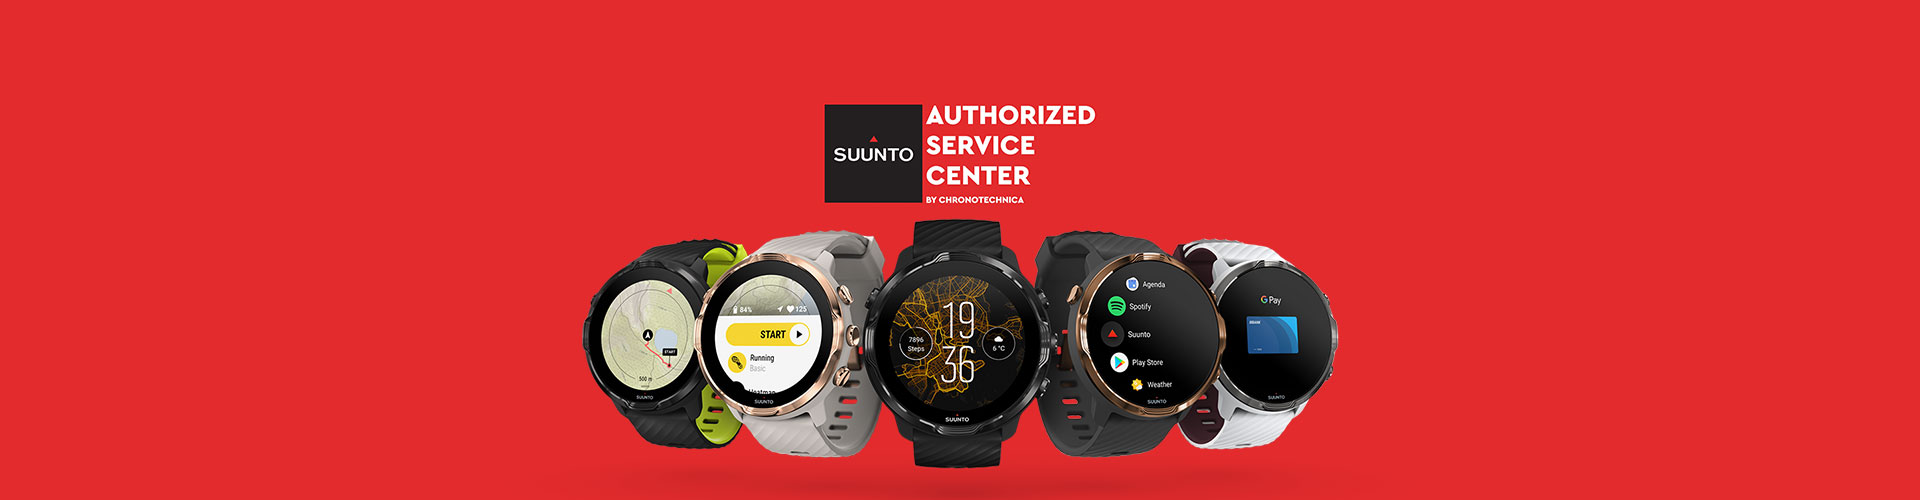 service suunto 2020 new models